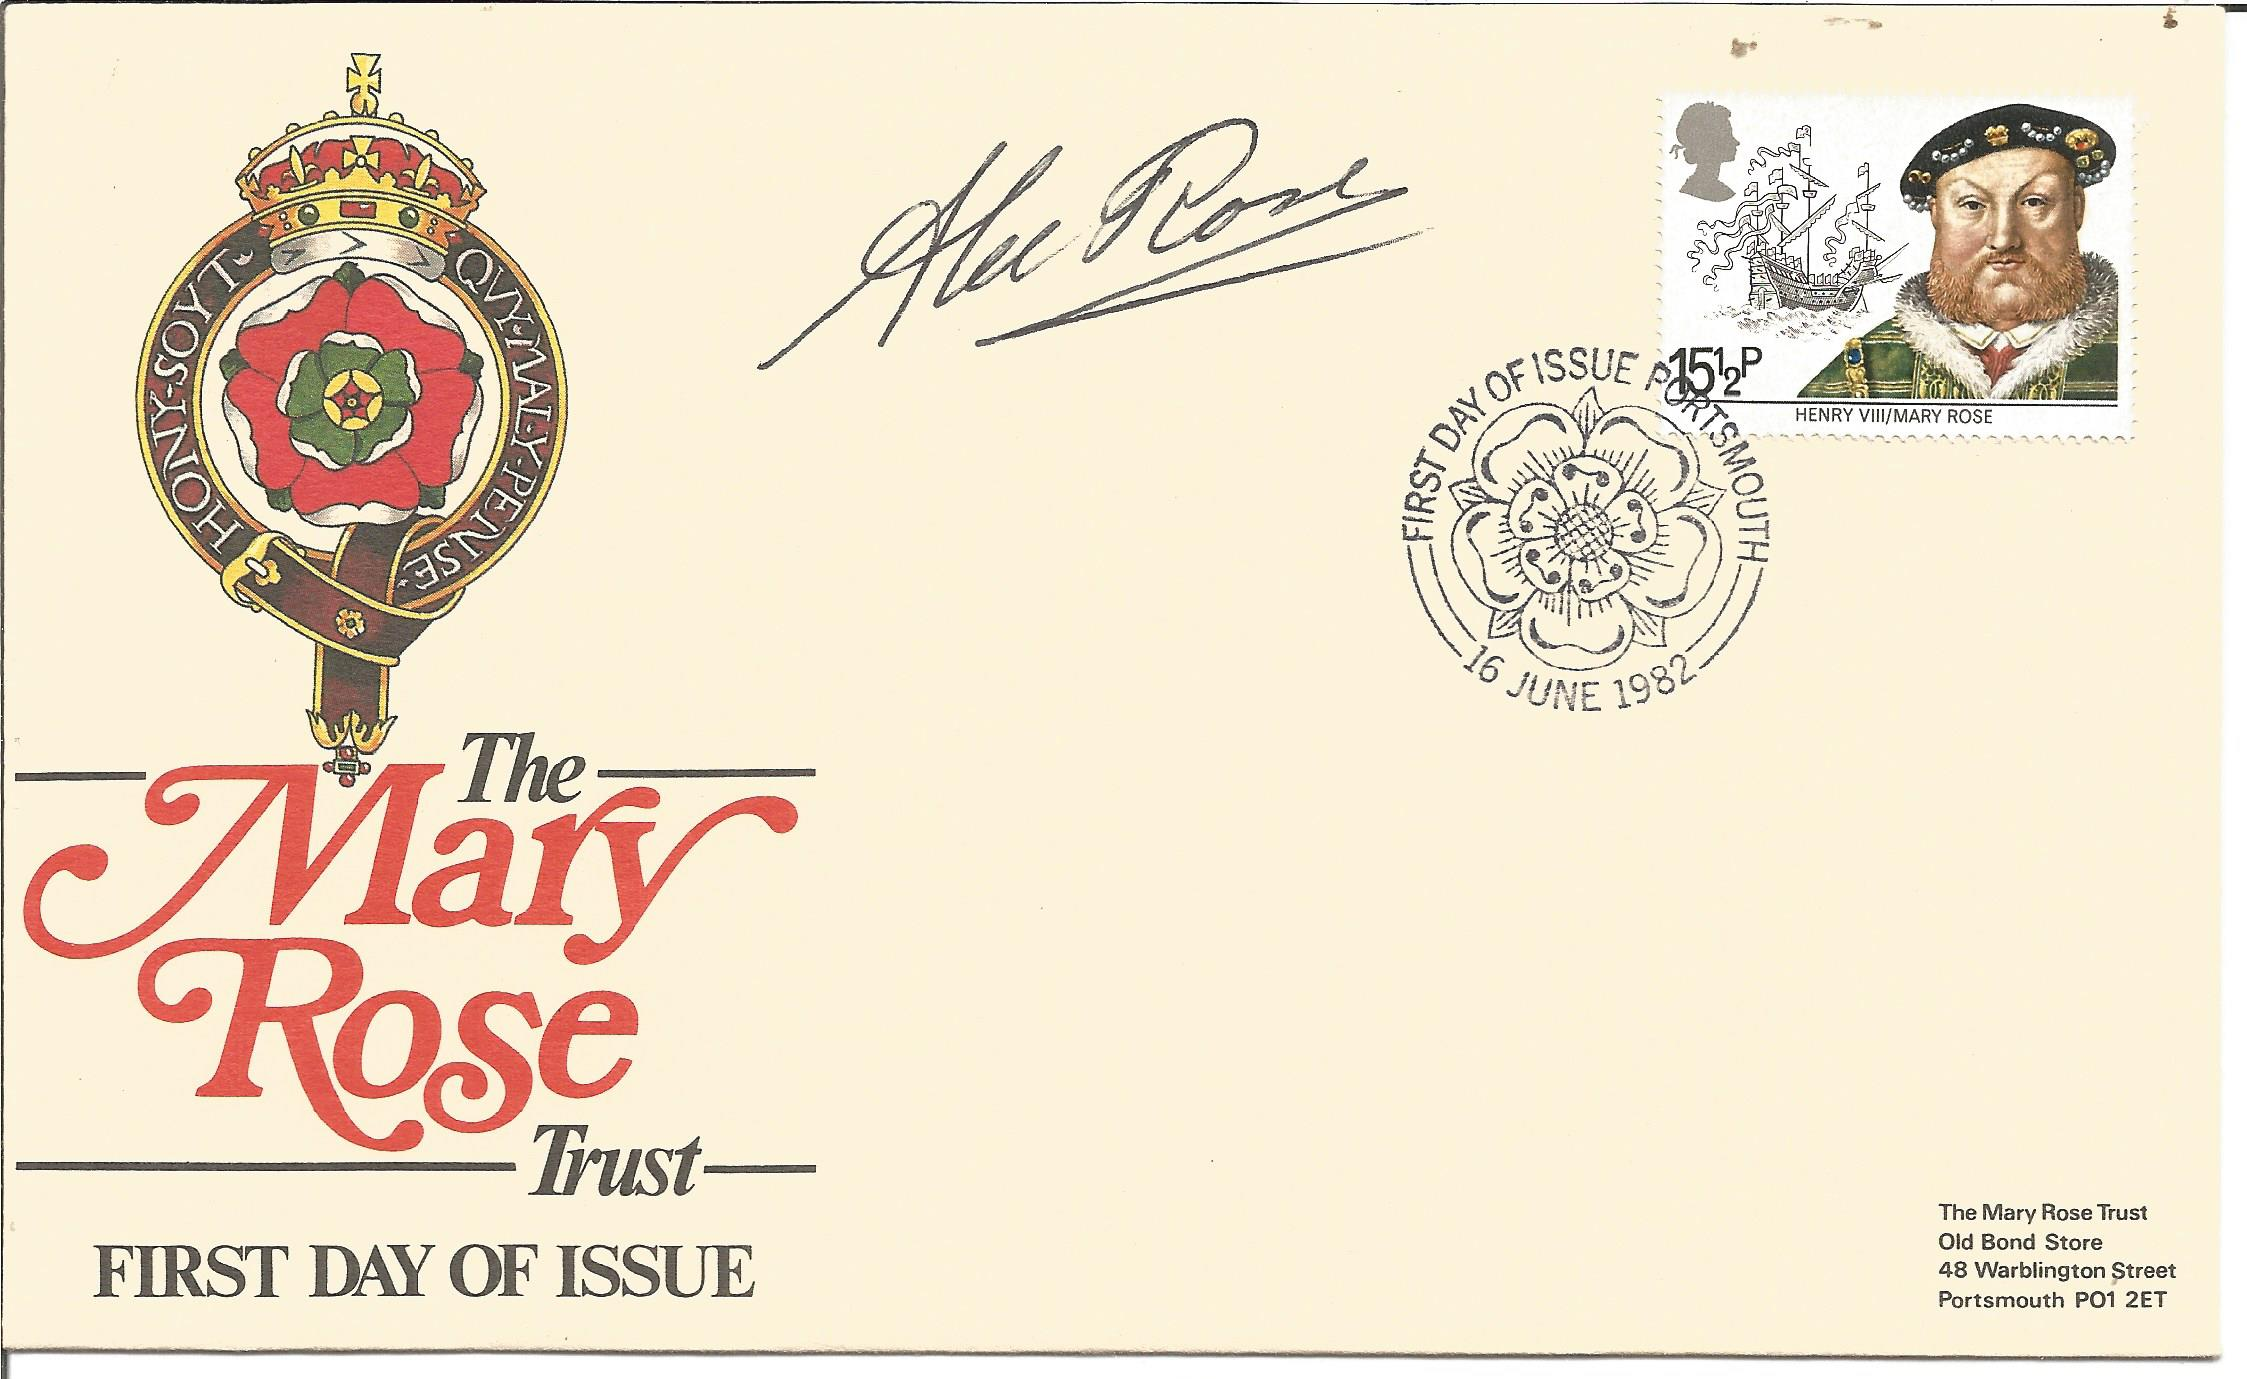 Alec Rose signed FDC to commemorate The Mary Rose Trust. Postmark 16th June 1982. Good condition.